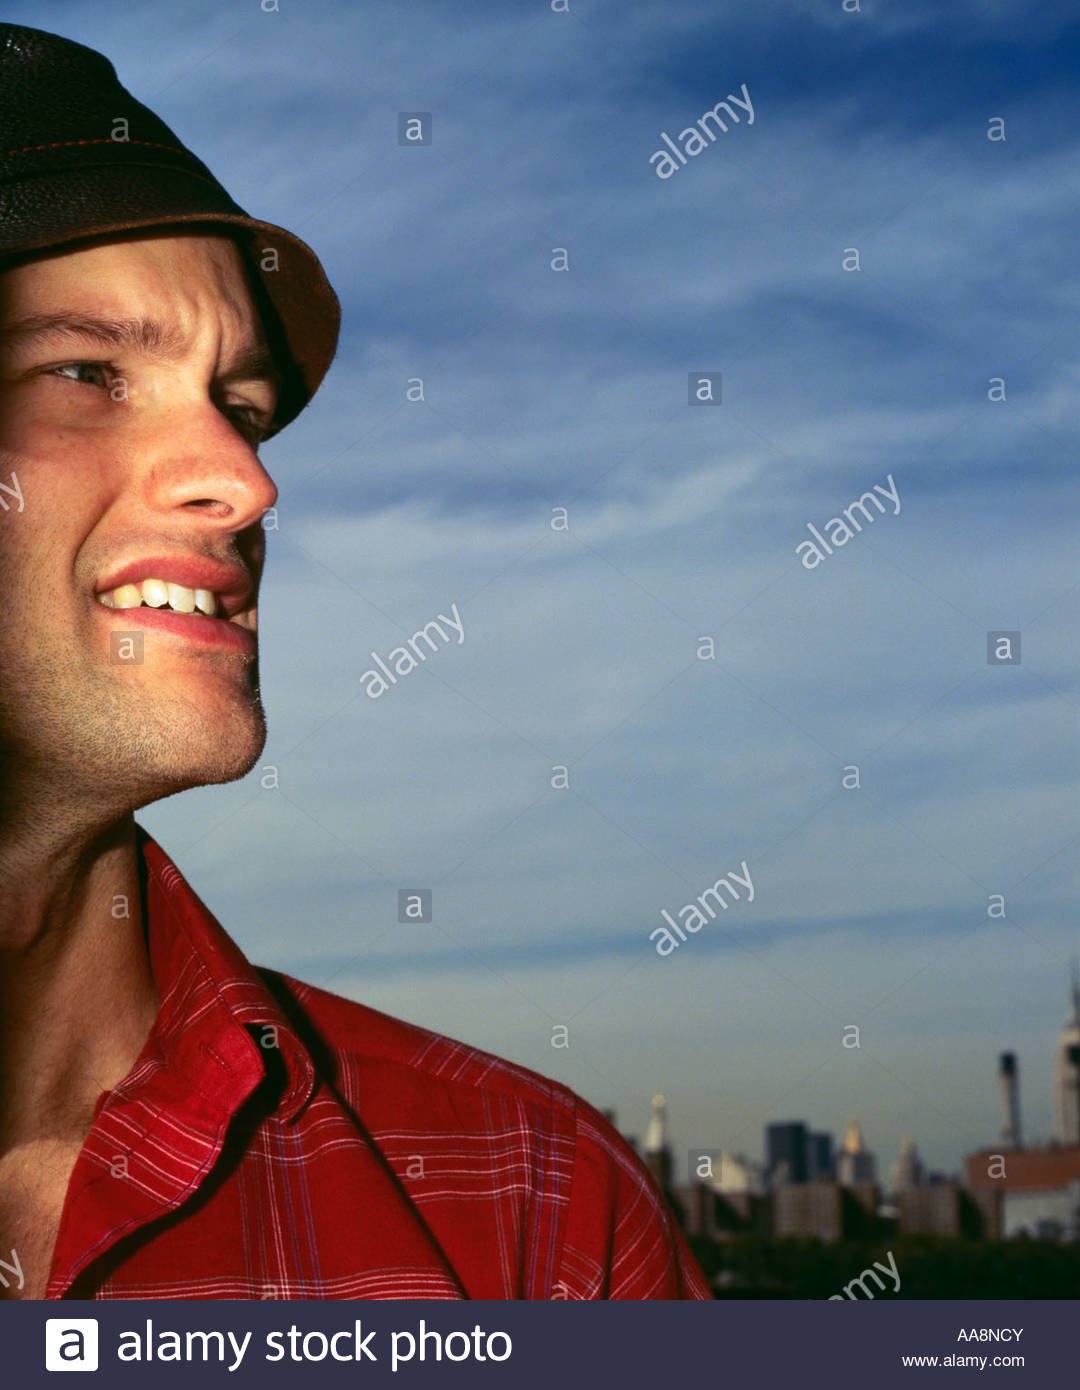 Profile of man outdoors - Stock Image